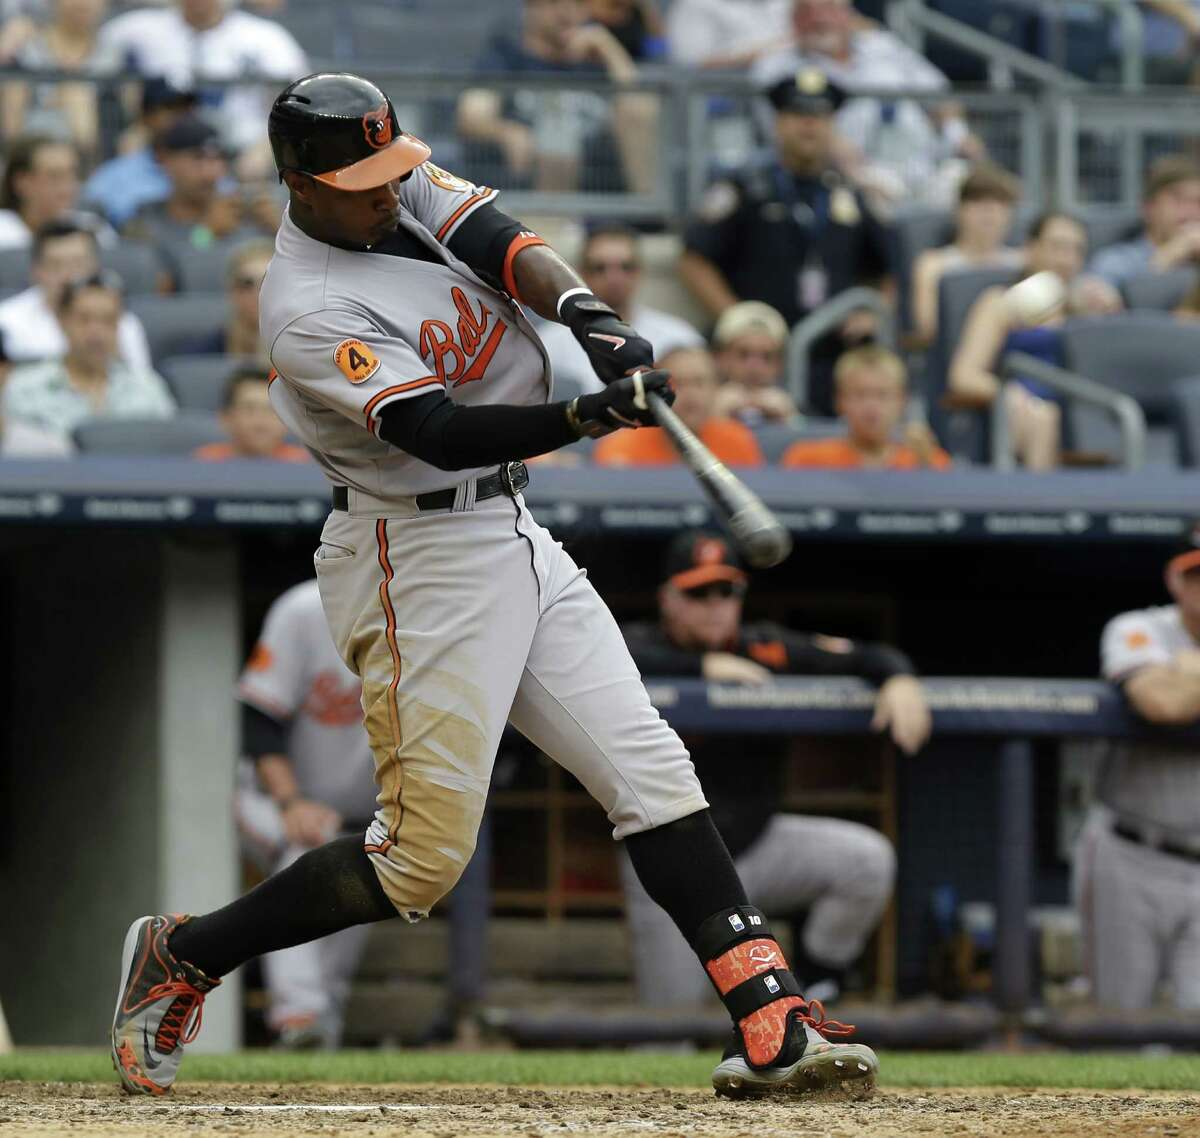 Baltimore Orioles' Adam Jones hits a three-run home run during the seventh inning of the baseball game against the New York Yankees at Yankee Stadium, Sunday, Sept. 1, 2013, in New York. (AP Photo/Seth Wenig) ORG XMIT: NYY111